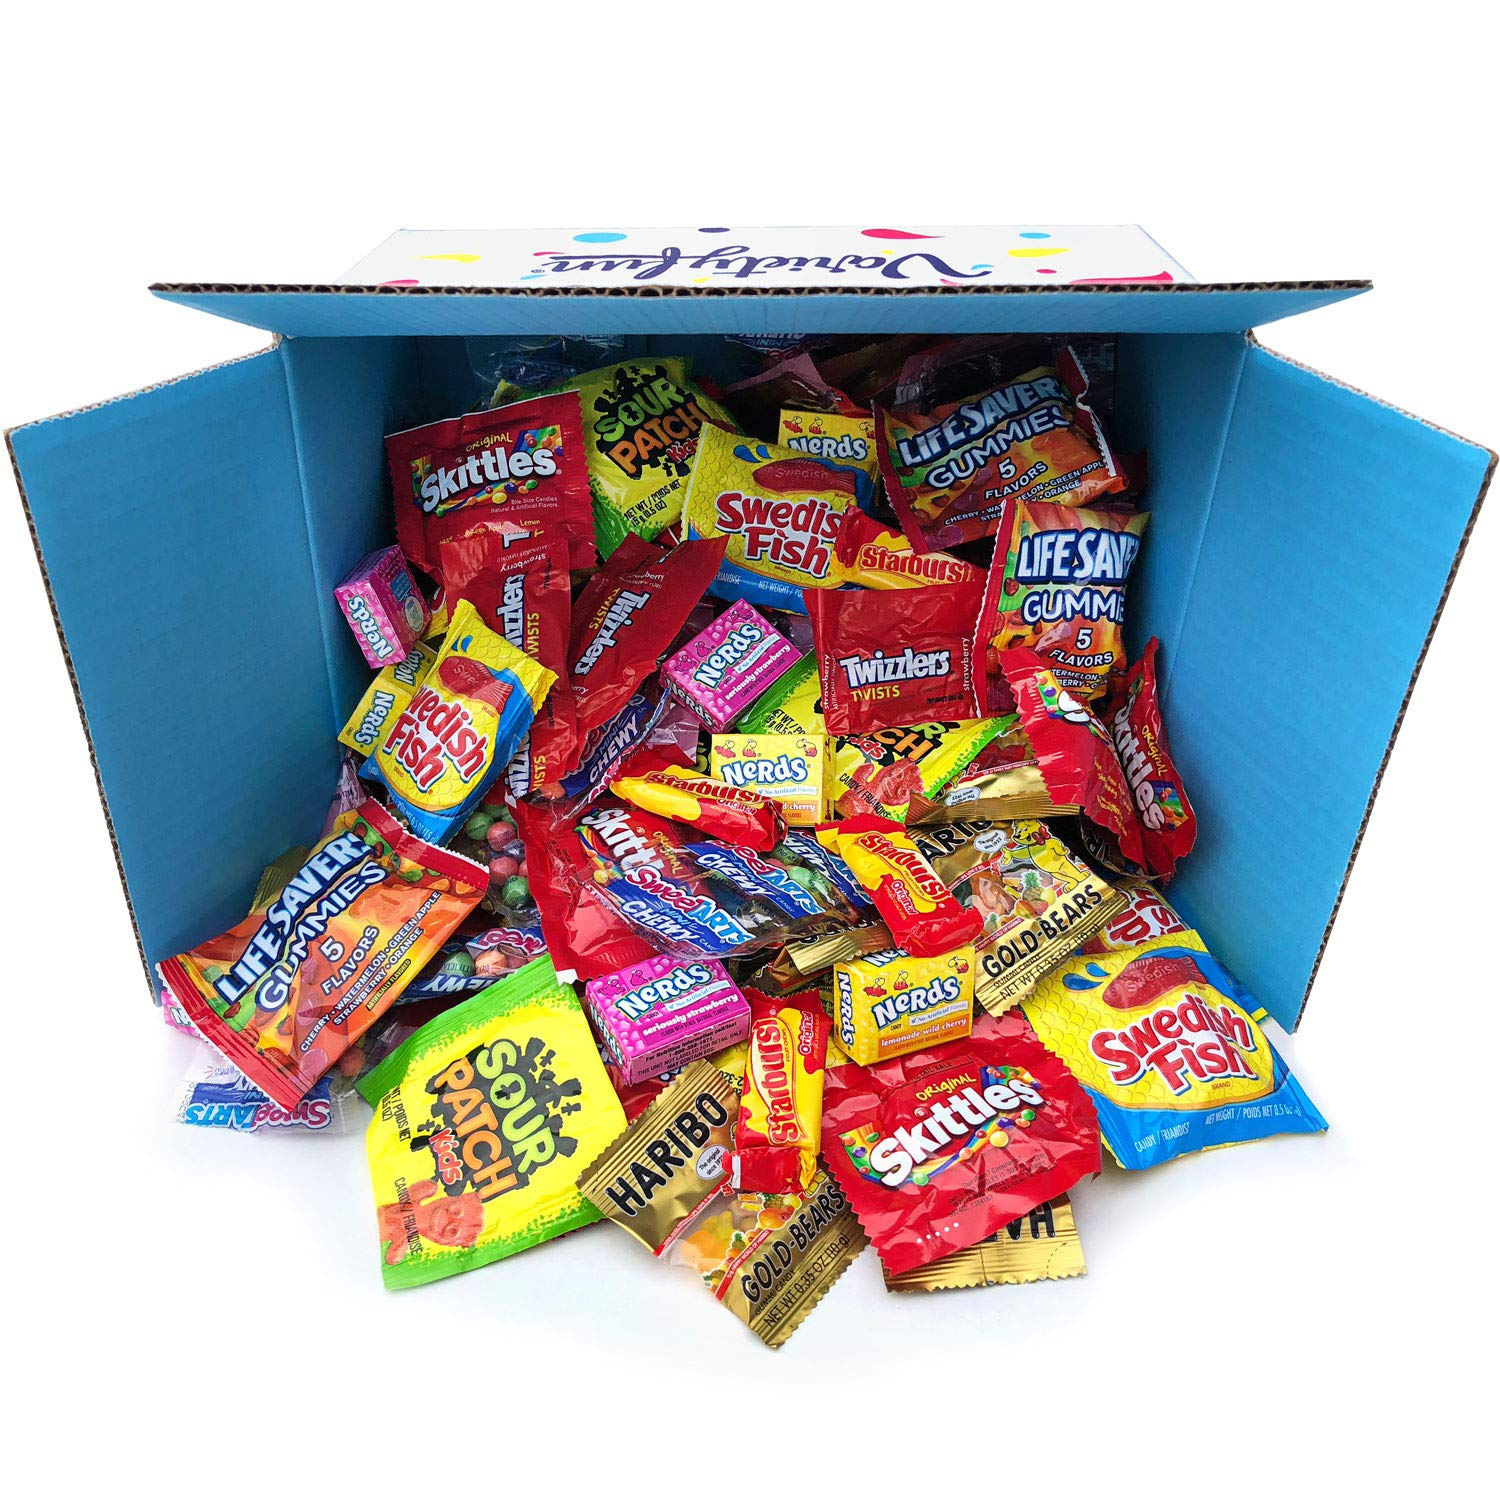 Candy Party Mix Bulk Bag of Skittles Swedish Fish Nerds Haribo Gummy Sour Patch Twizzlers Starburst Mike and Ike ' more! by Variety Fun Net wt (96 oz) by Custom Varietea